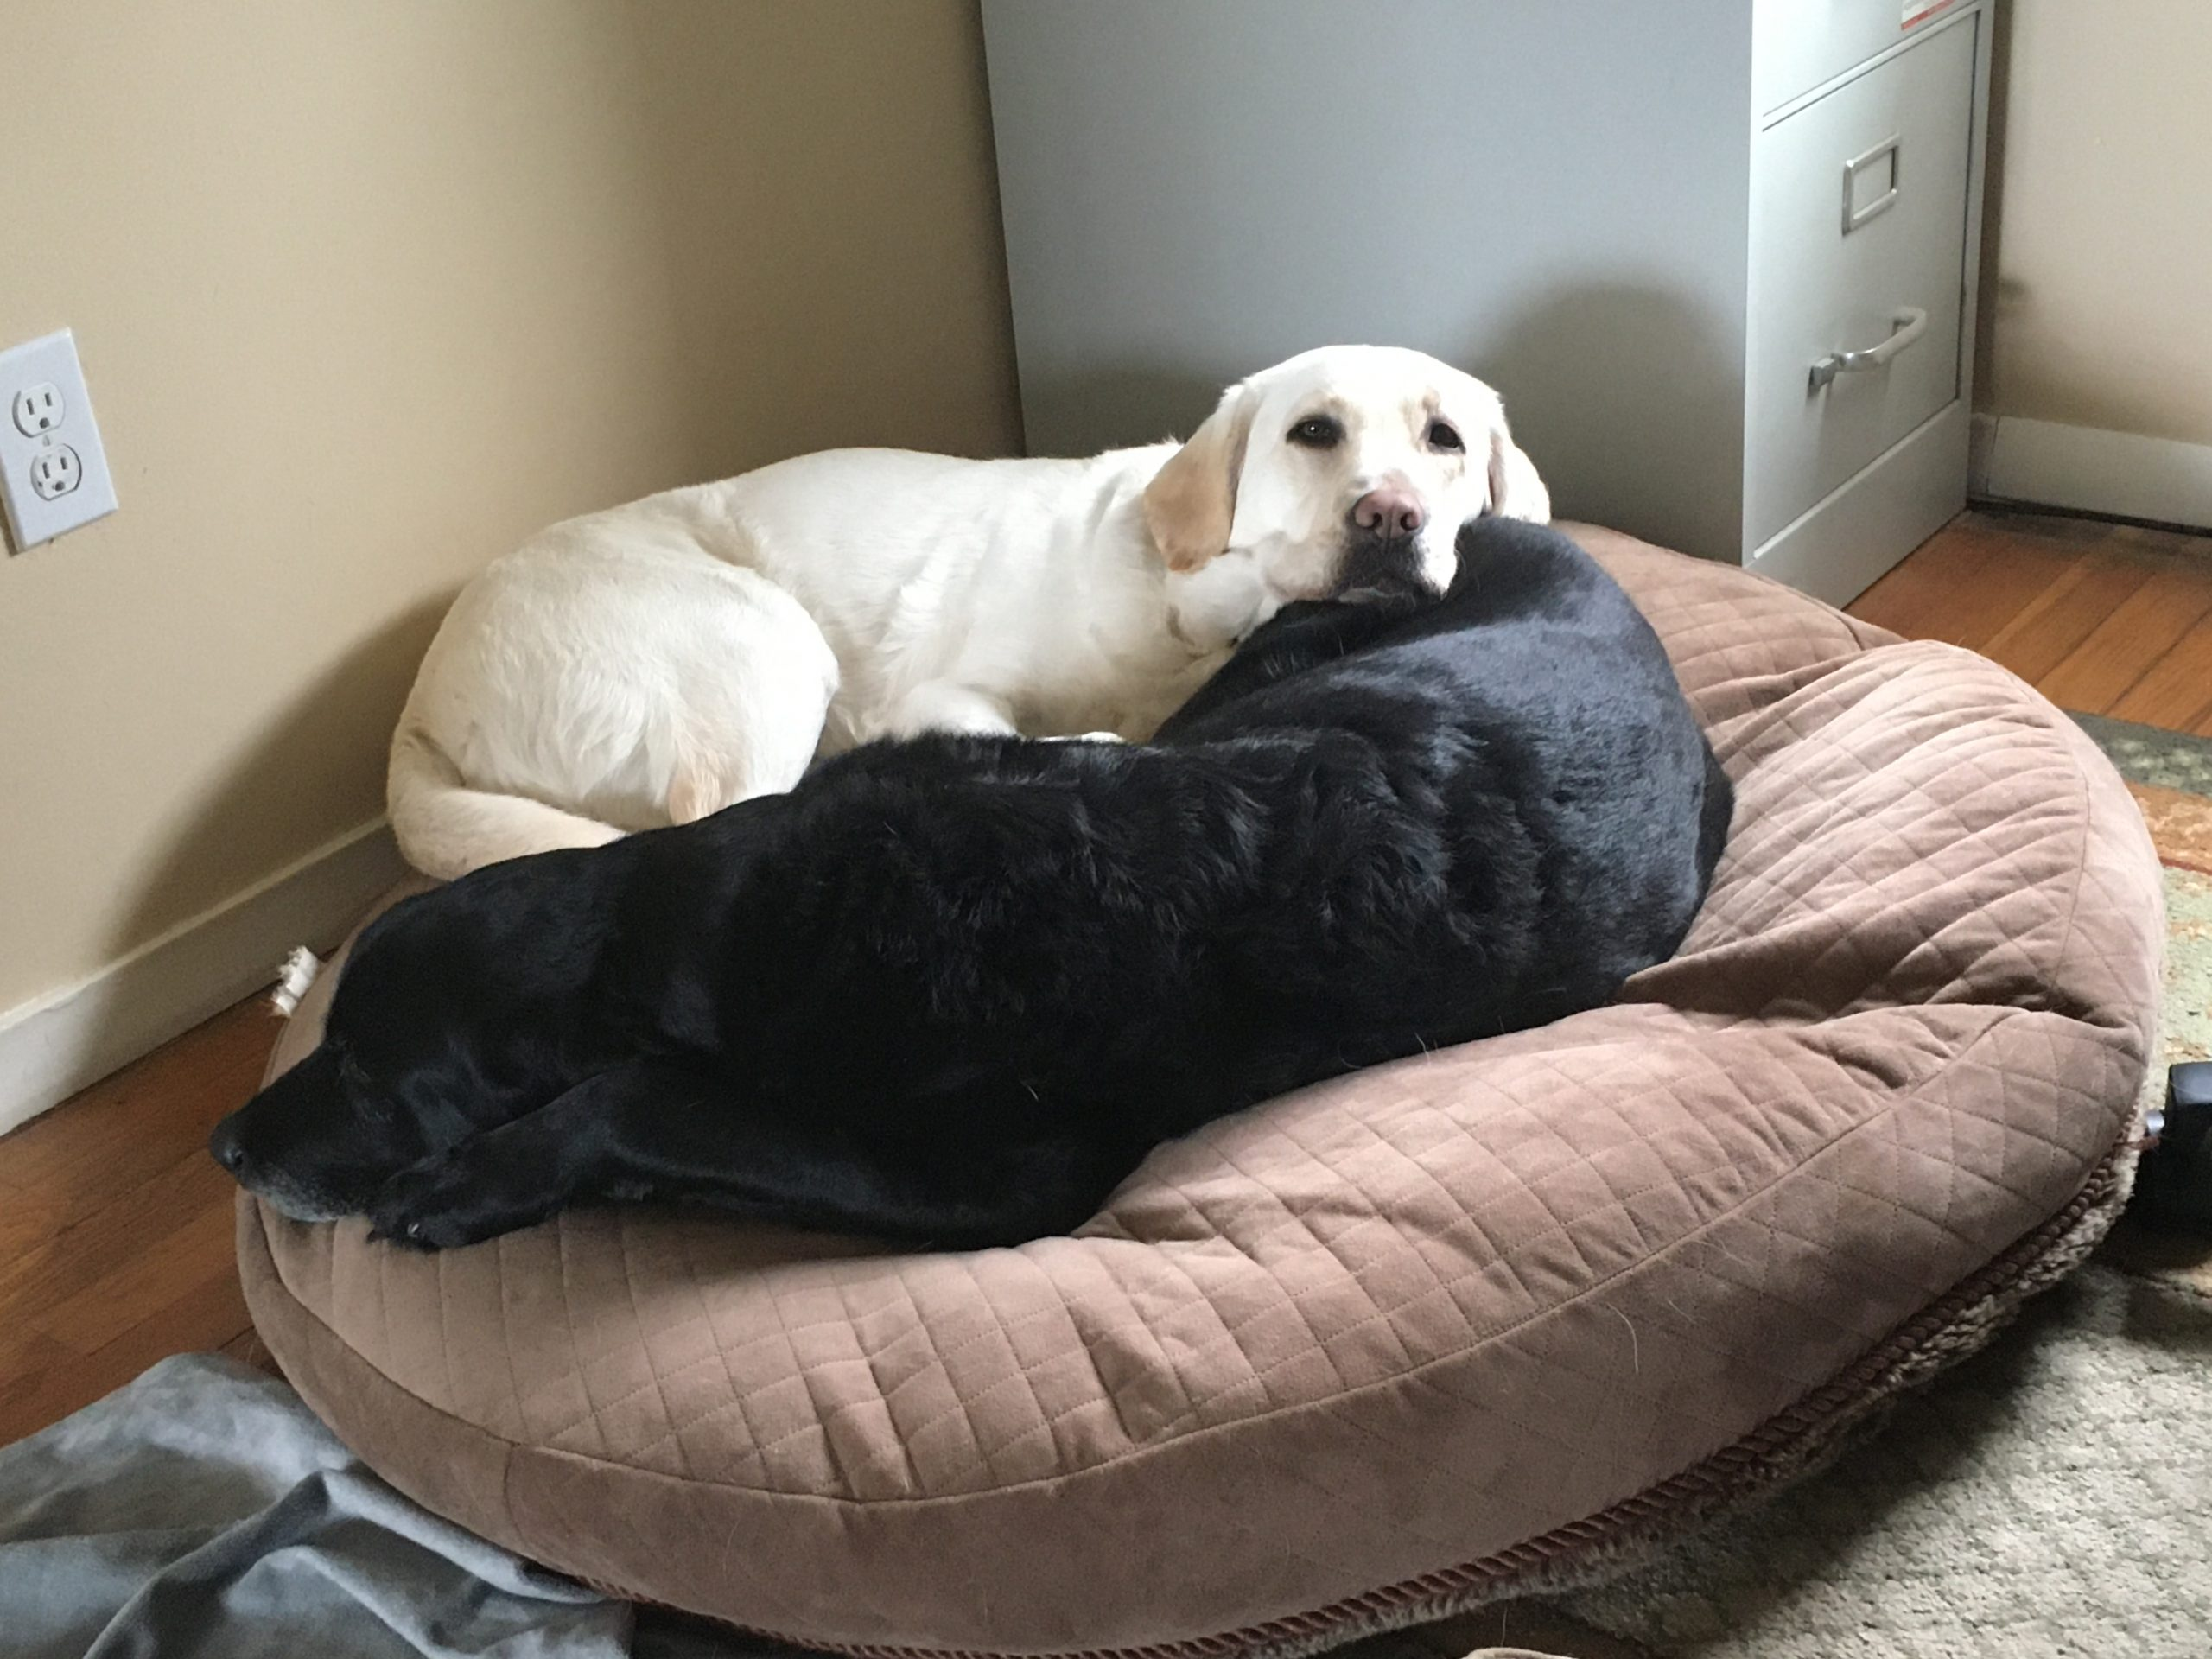 yellow lab sleeps next to a black retriever on a brown round dog bed